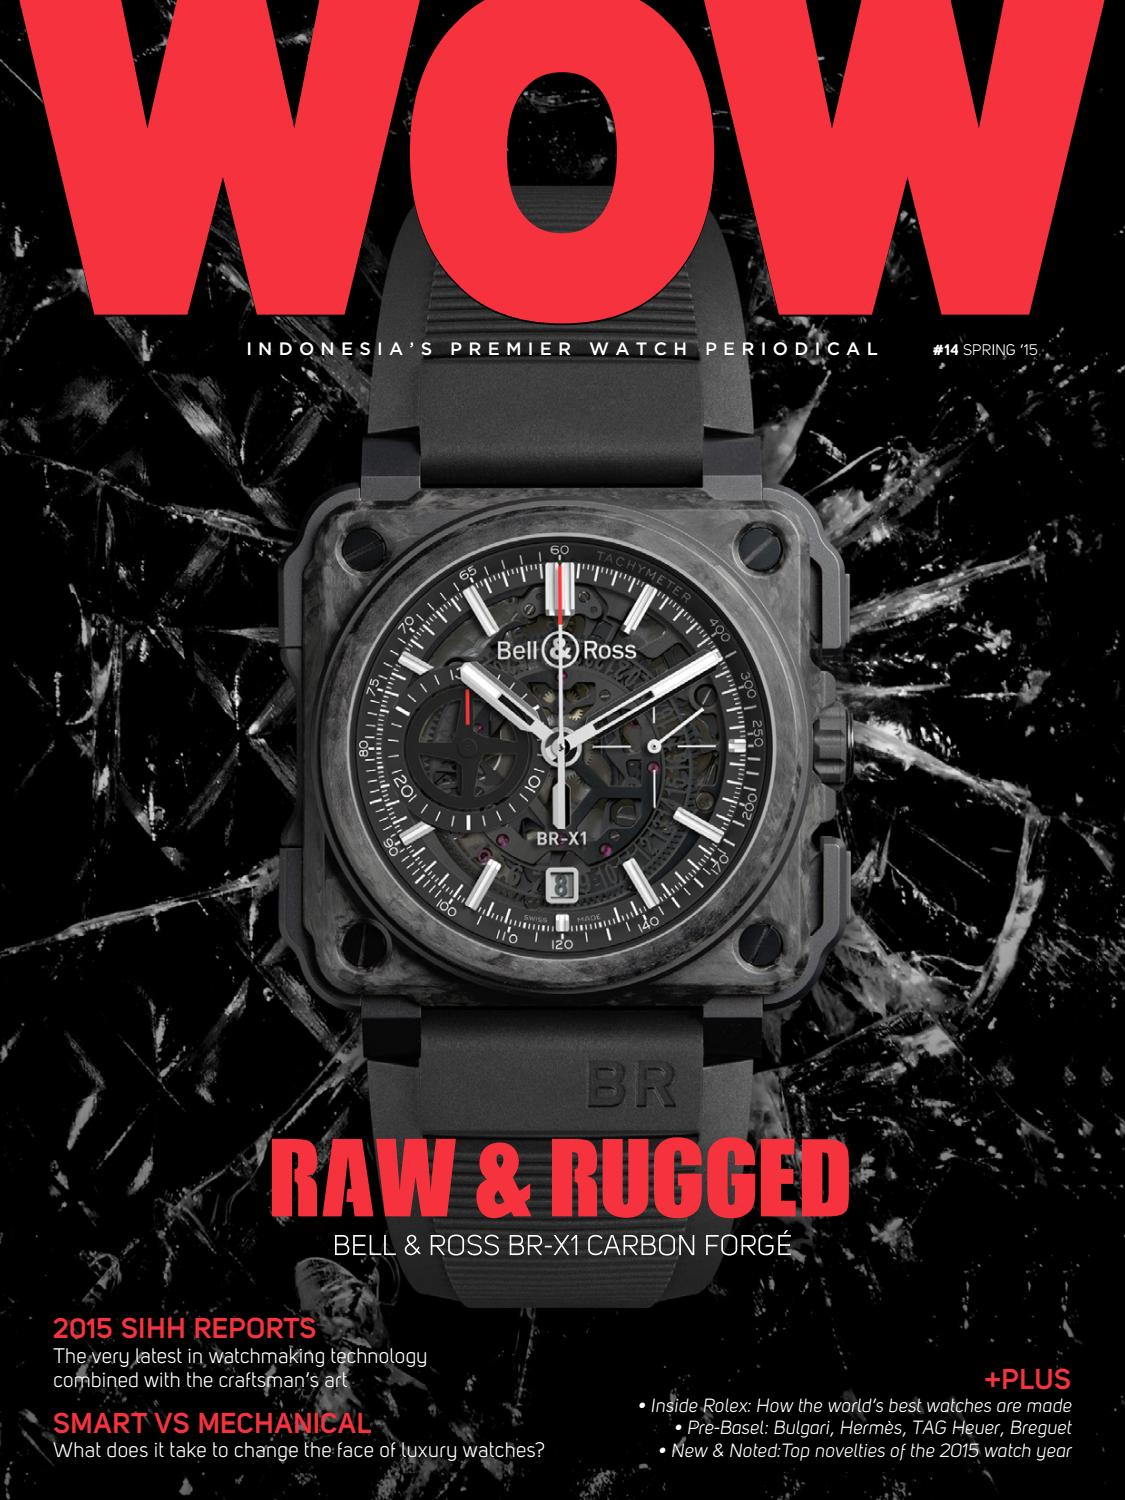 World Of Watches Indonesia 14 Spring Issue 2015 By Arvada Jam Tangan Couple Swiss Navy Sn5860 Rosegold Stainless Steel Haradiran Issuu